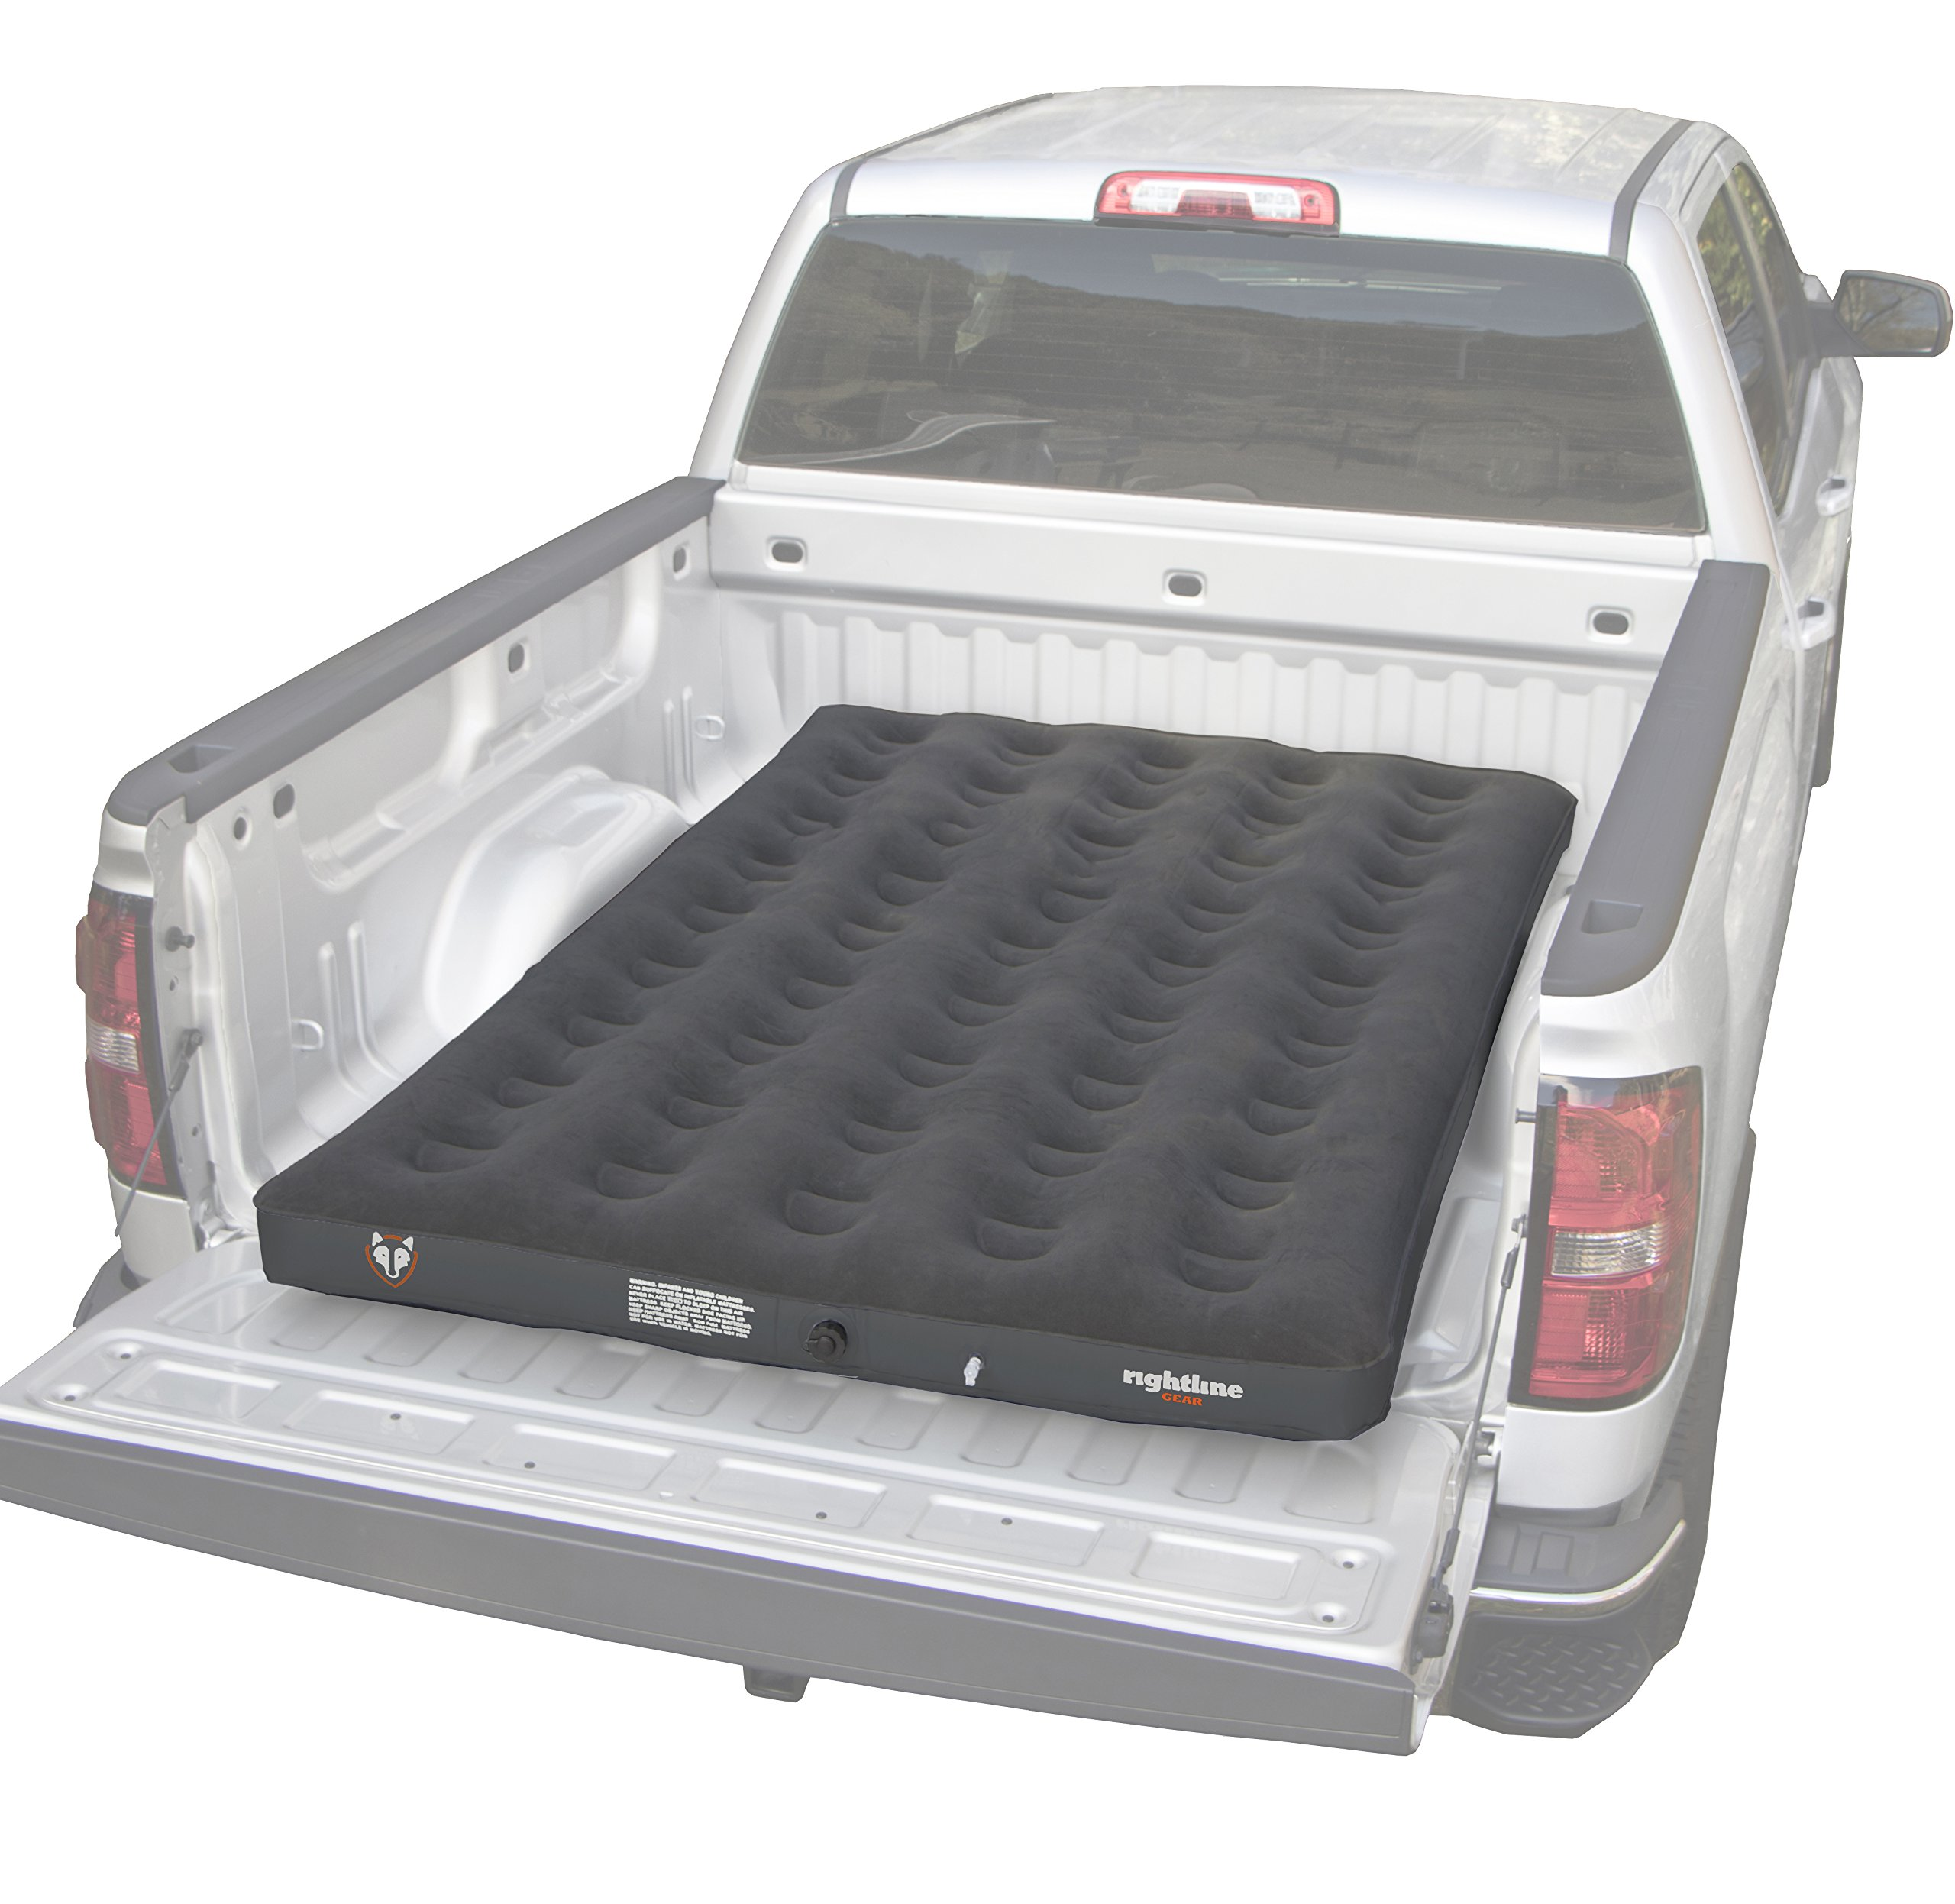 Rightline Gear 110M10 Full Size Truck Air Mattress (5.5' to 8' Bed)